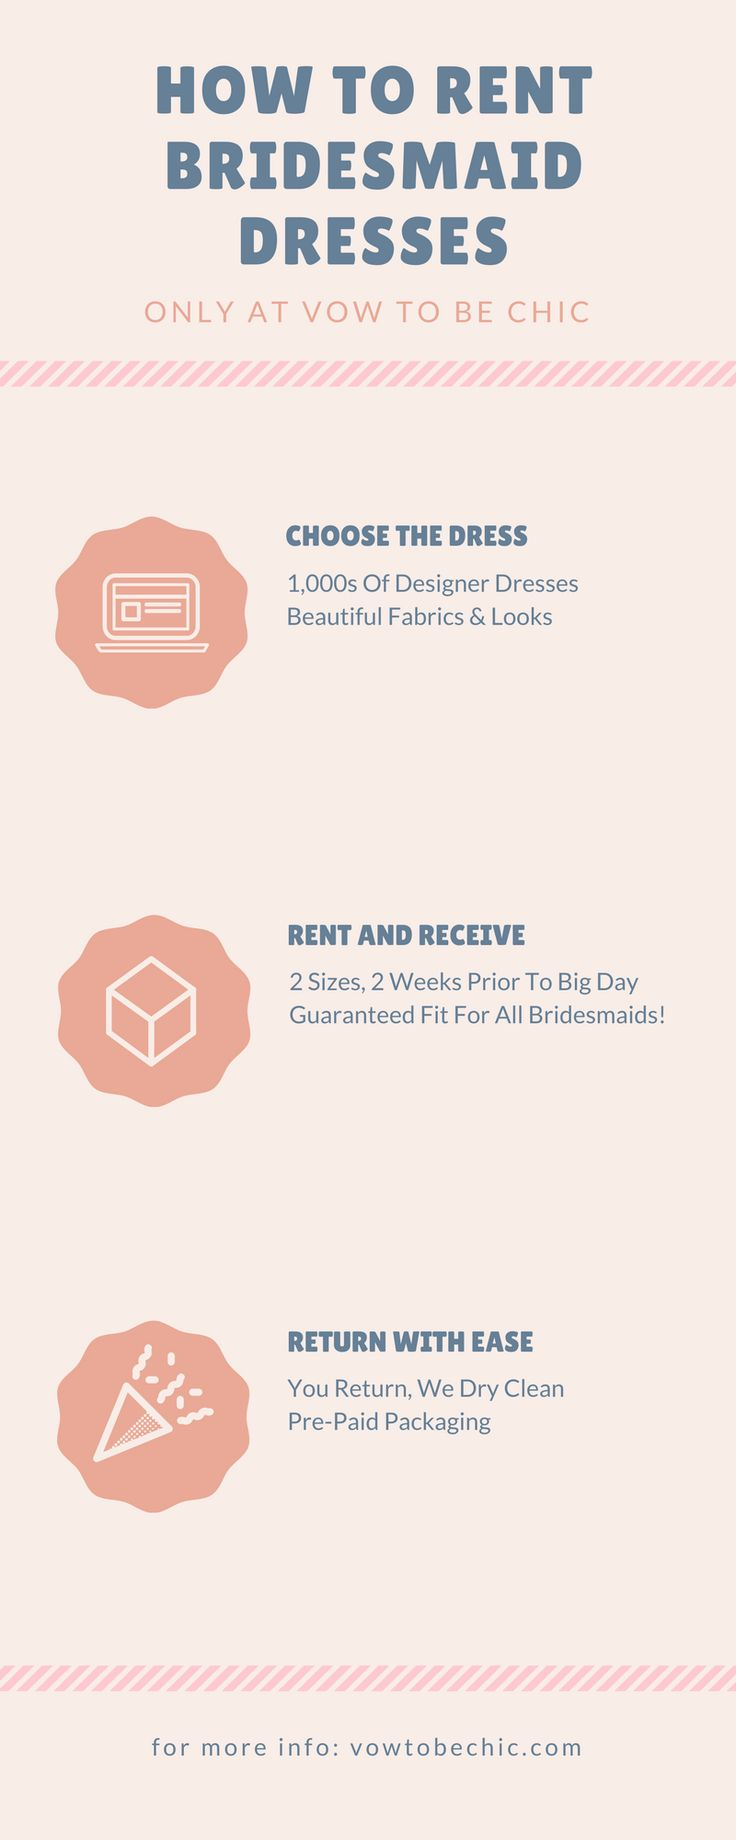 Wouldn't it be nice if you could wear a glam designer bridesmaid dress but not have to break the bank in the process? Now you can! Vow To Be Chic is the first (and only) online bridesmaid dress rental boutique. We deliver high-quality designer bridesmaid dress rentals to bridesmaids' doors for under $100—a fraction of the retail price. We make the process simple, from reserving to free returns. You're welcome. :)